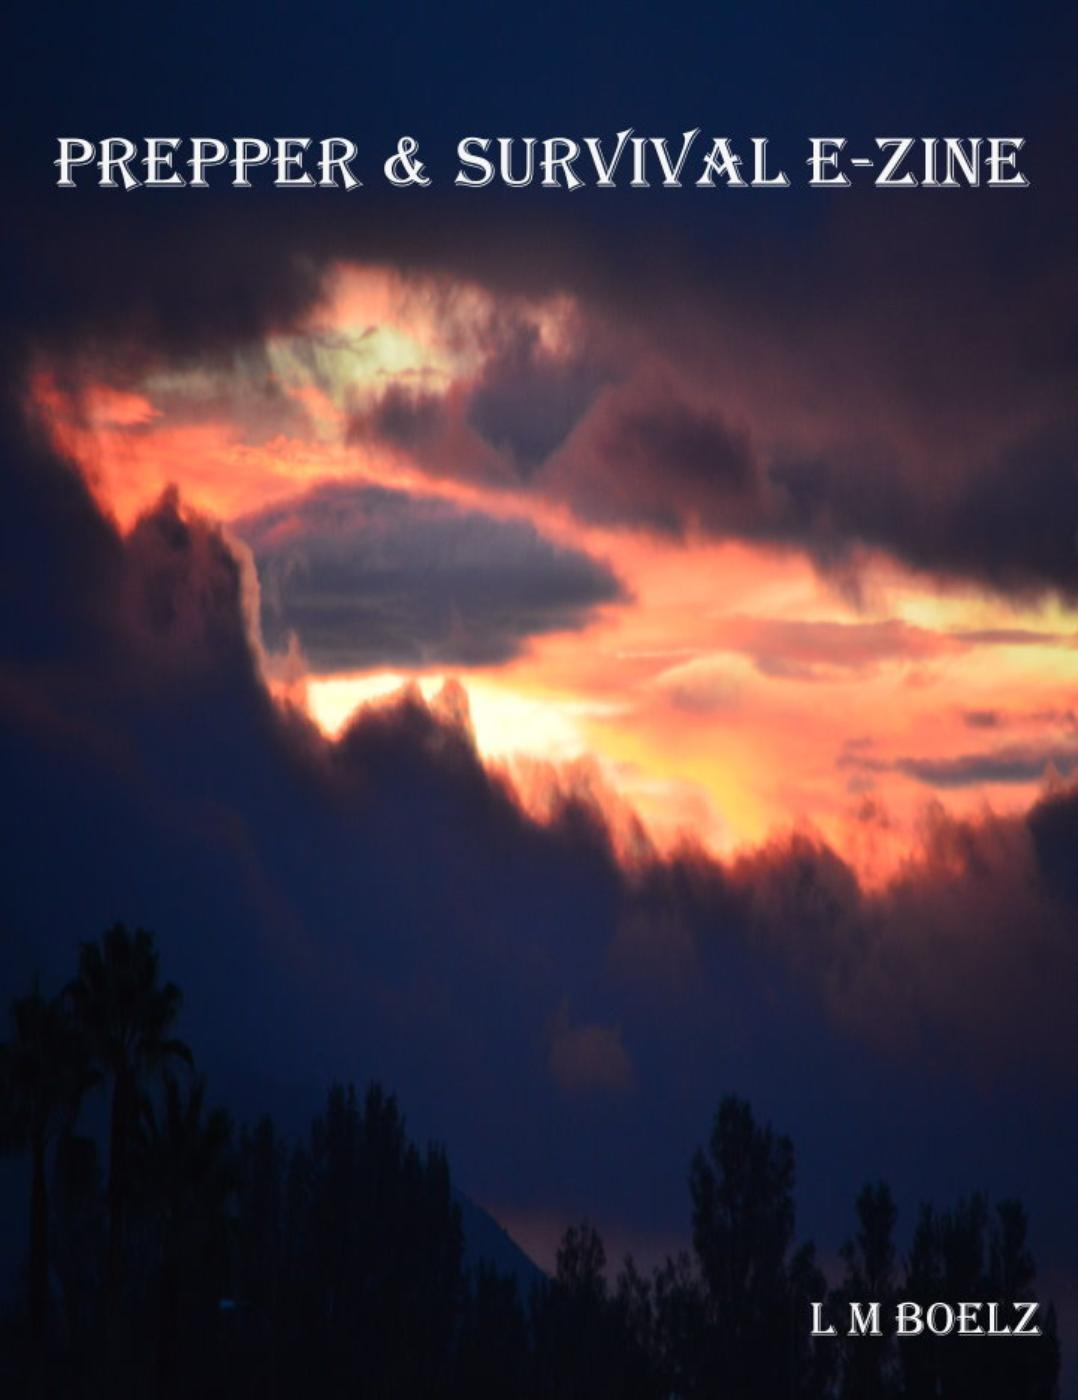 Prepper & Survival E-Zine (Monthly electronic magazine, #1)